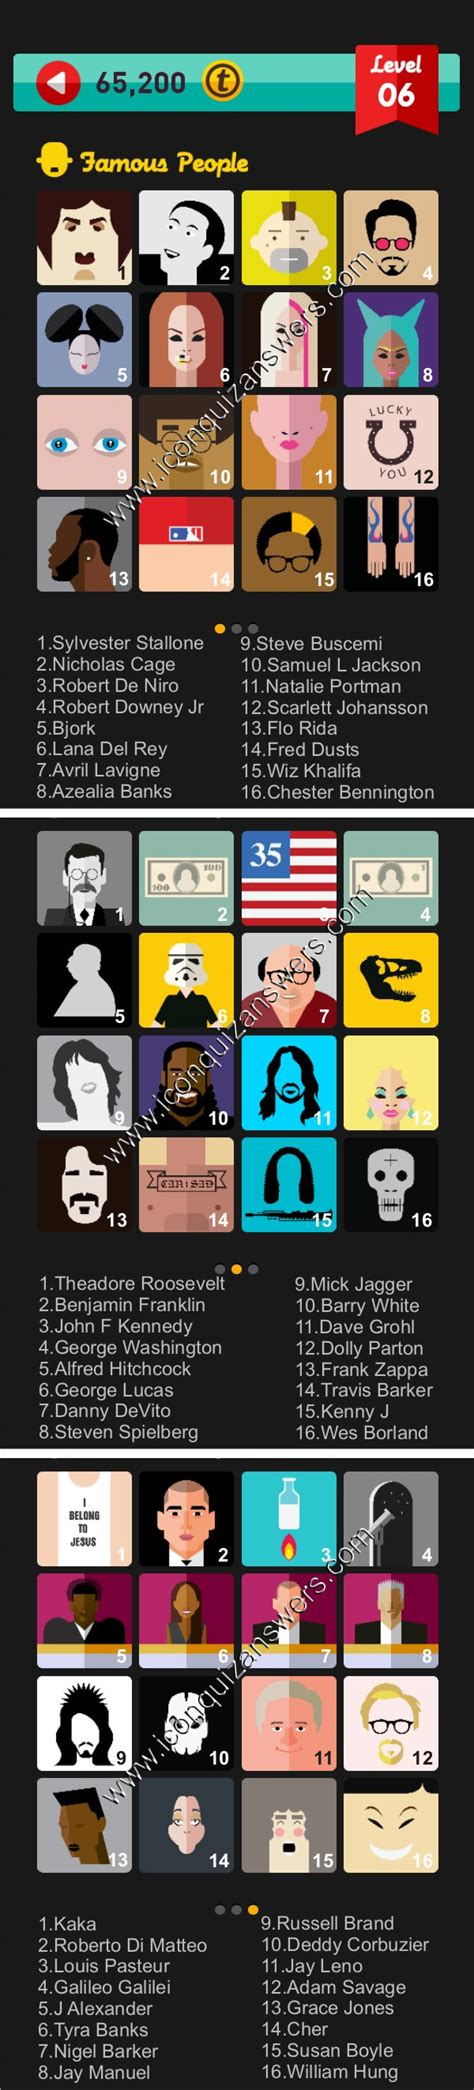 celeb pop quiz answers icon pop quiz famous people level 6 answers for iphone